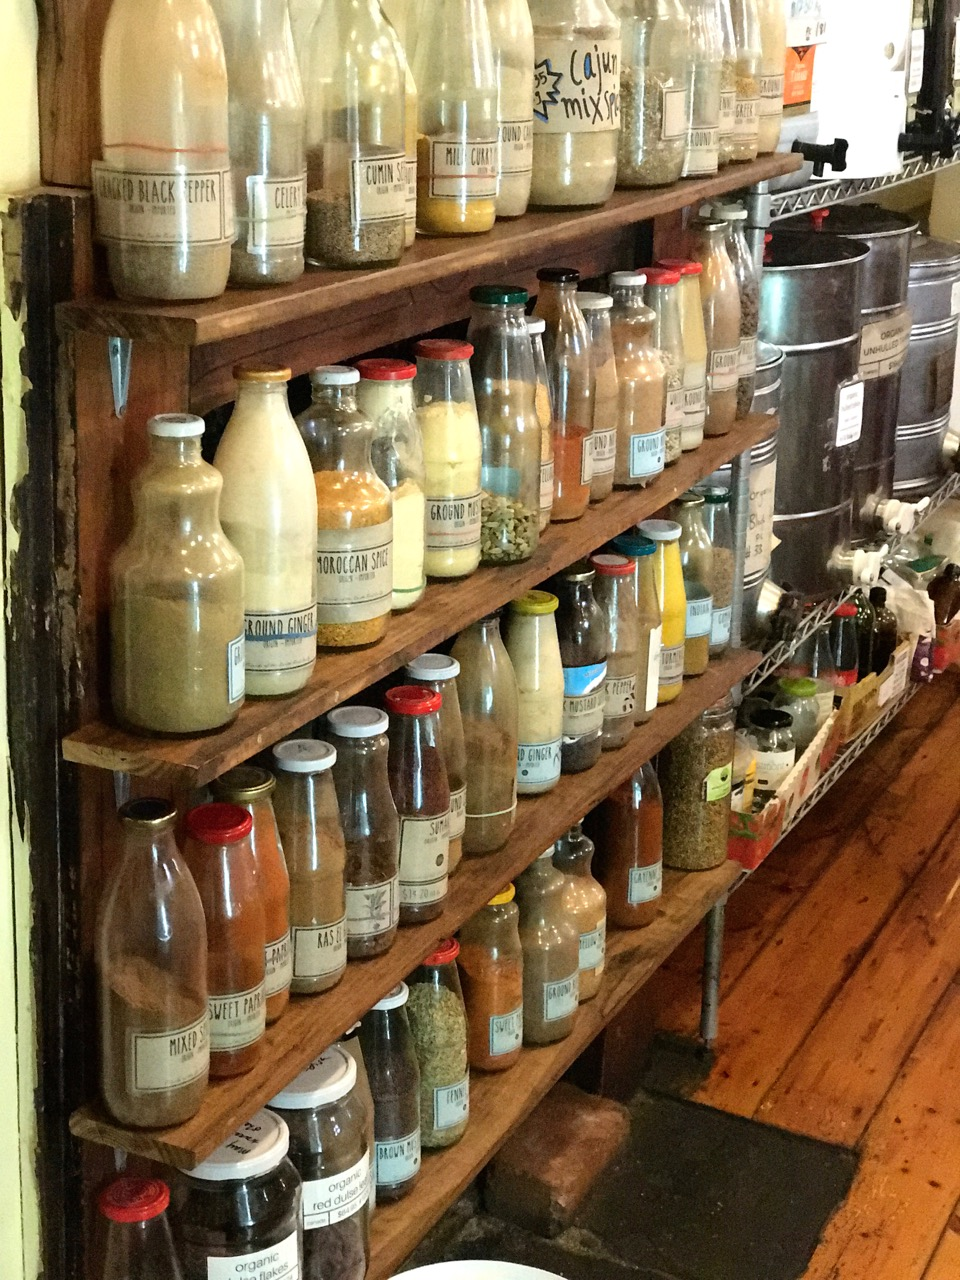 Where to buy bulk foods such as spices, grains, oils, nuts, legumes, teas and coffee in Melbourne.